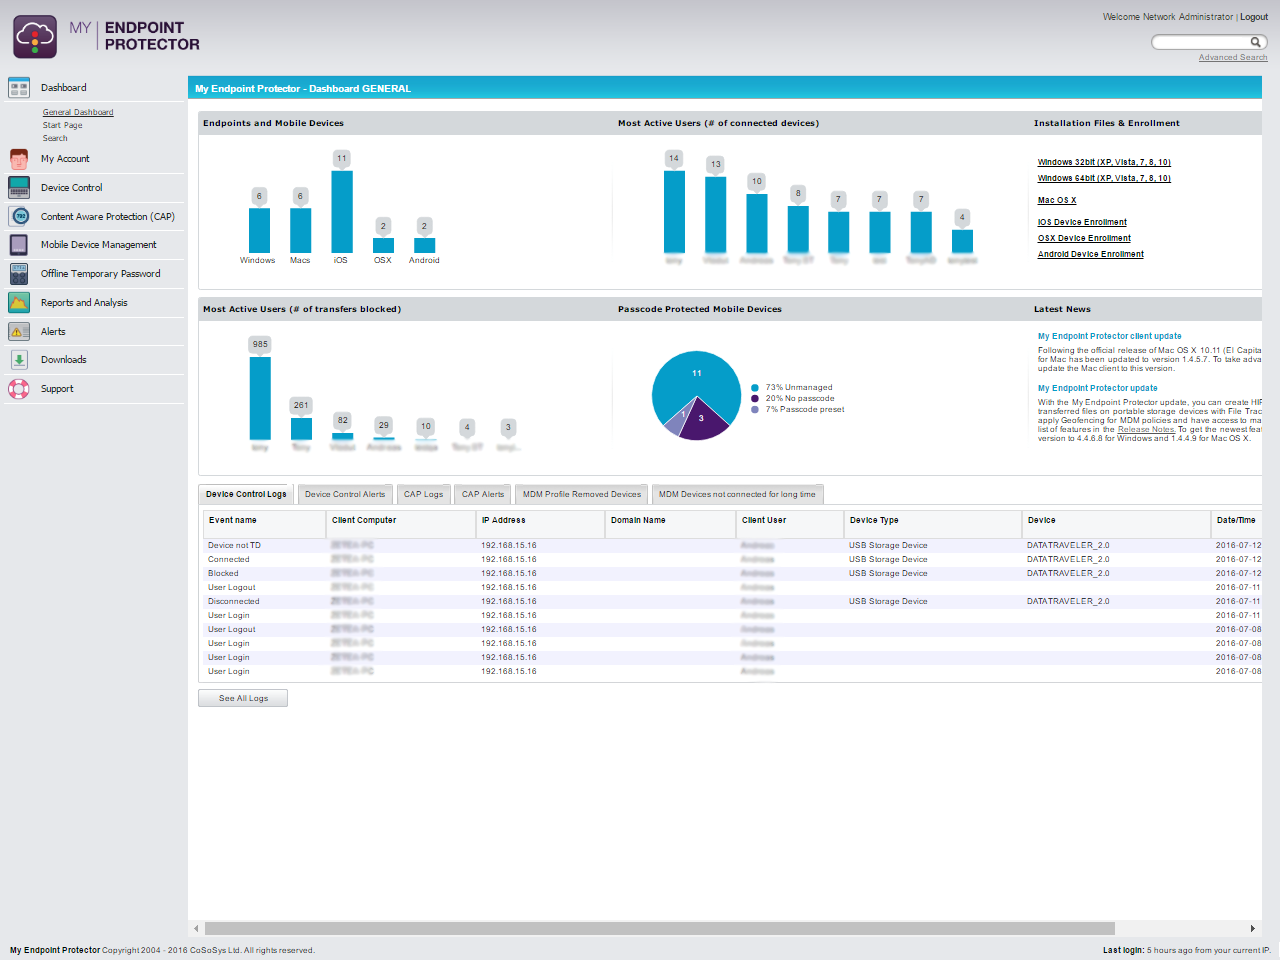 My Endpoint Protector - General Dashboard